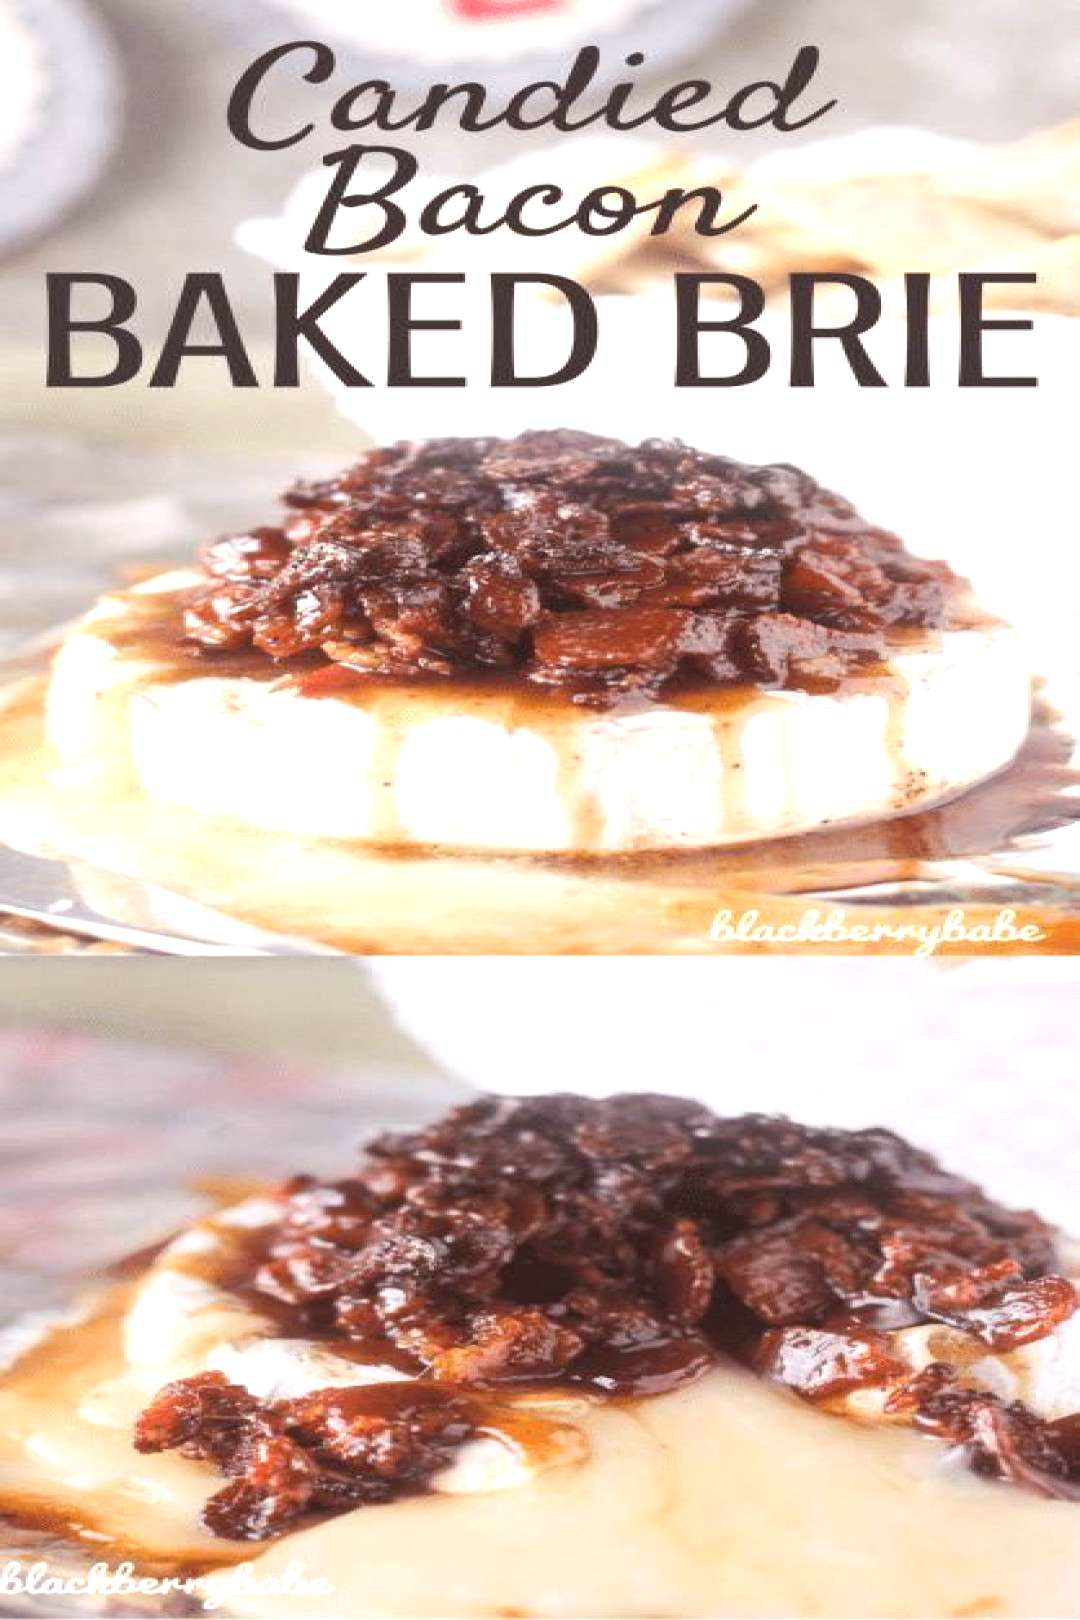 Candied Bacon Baked Brie   Baked Brie Appetizer   Candied Bacon   Brie Bacon Appetizer  